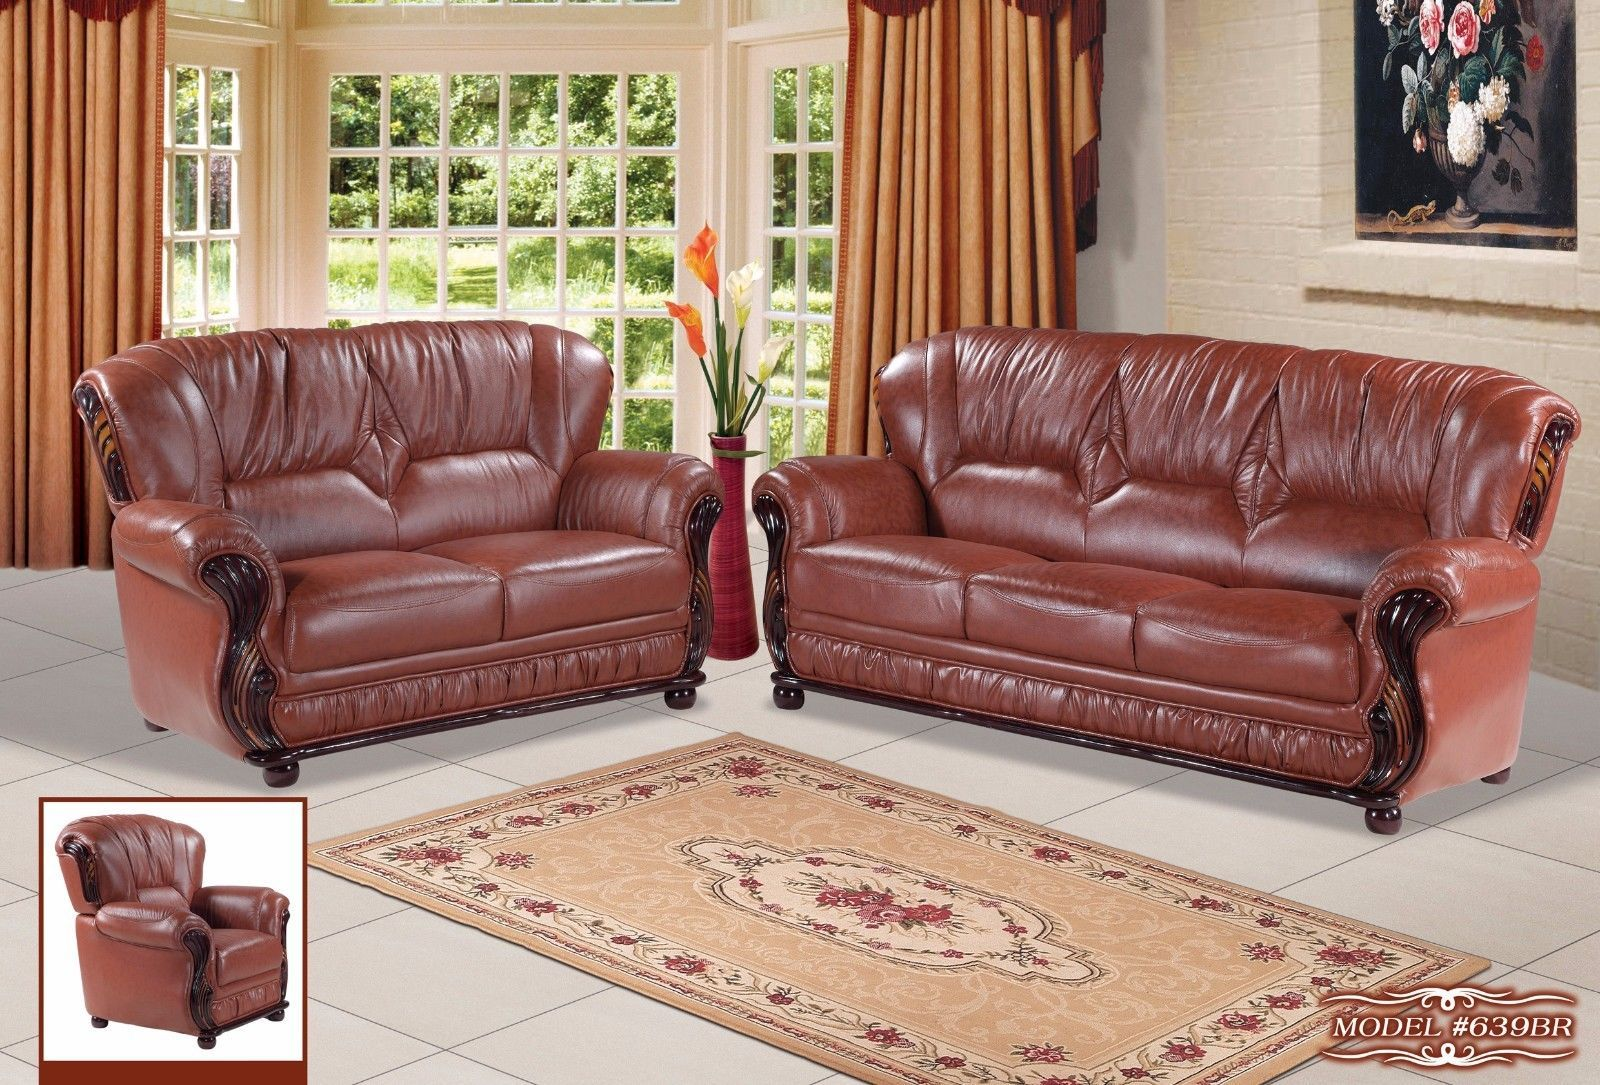 Meridian 639 Mina Living Room Sofa in Brown Bonded Leather Traditional Style